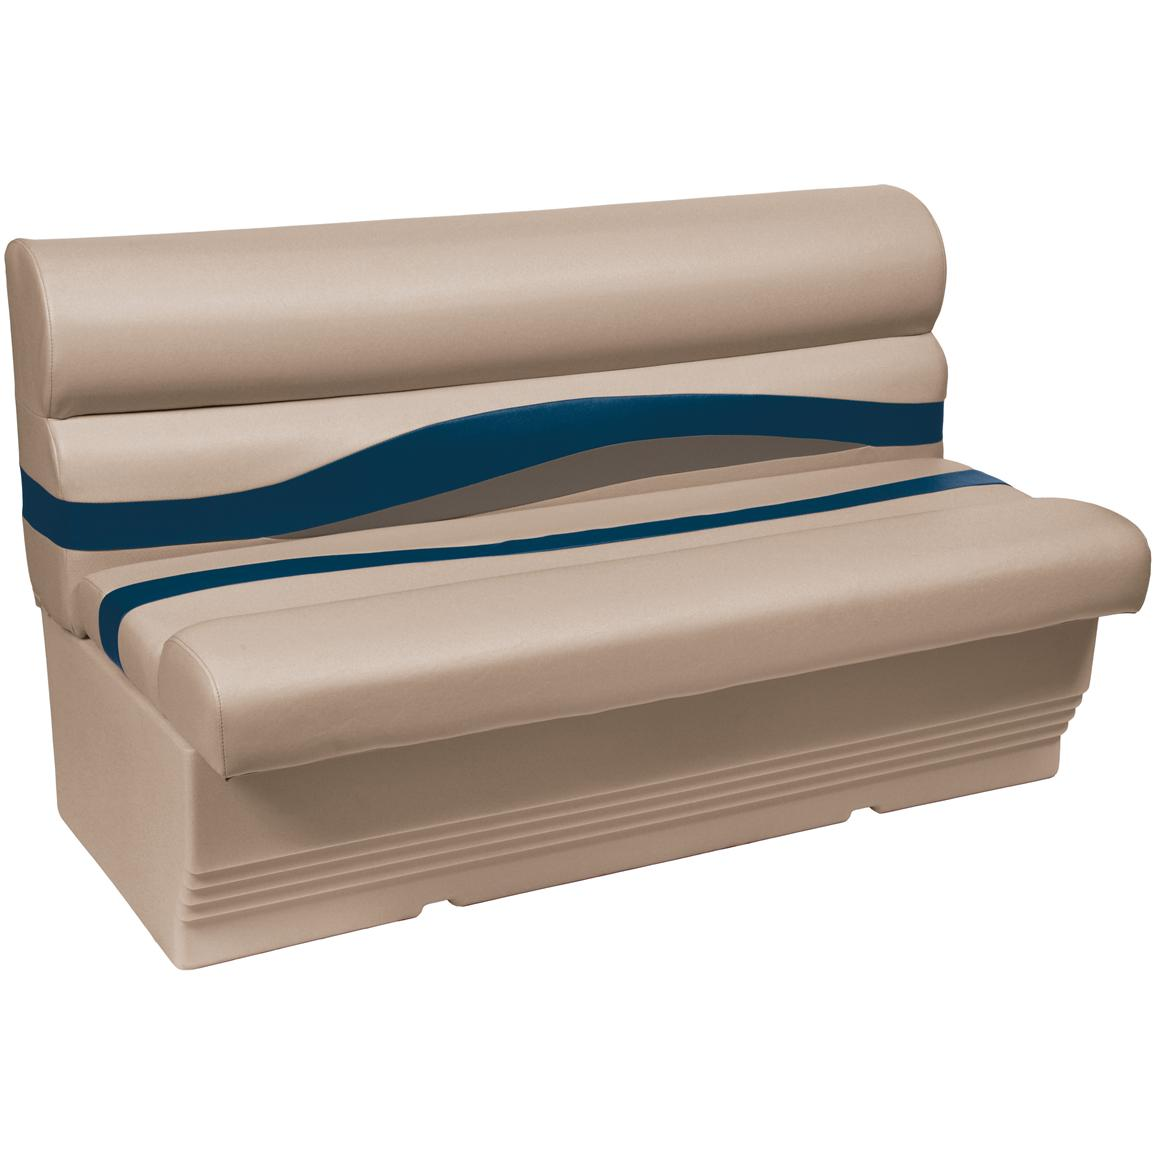 Wise® Premier 1100 Series 50 inch Pontoon Bench Seat, Color D